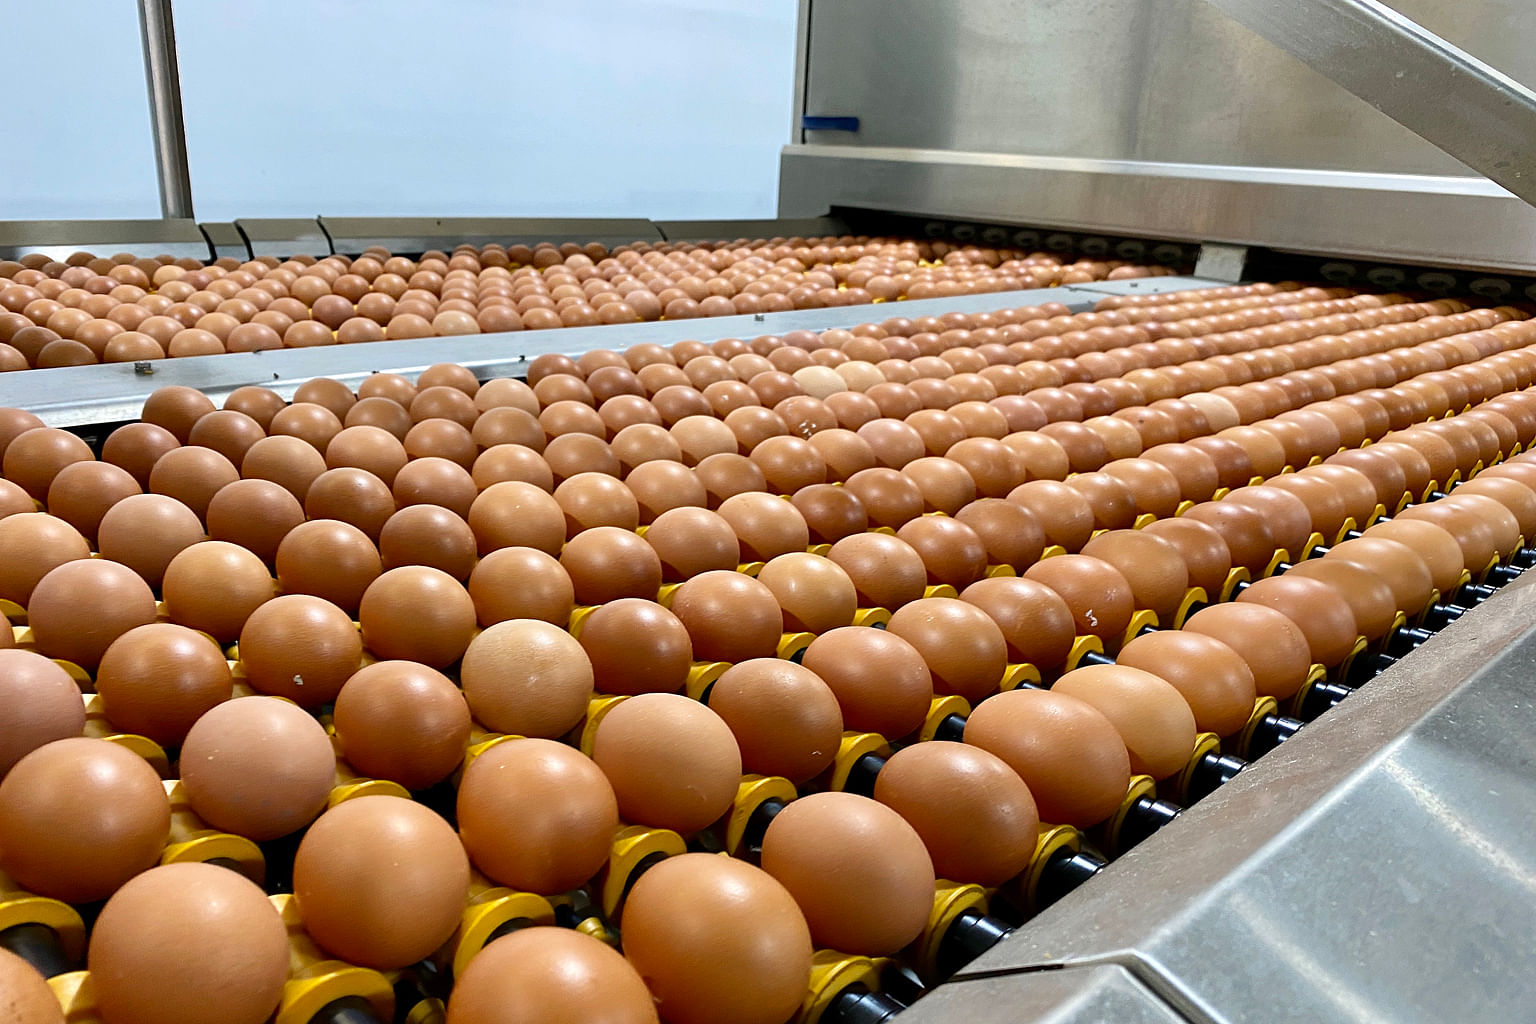 Chew's Agriculture will boost output at its new farm in Neo Tiew Road, which has the capacity to produce at least 800,000 eggs a day.